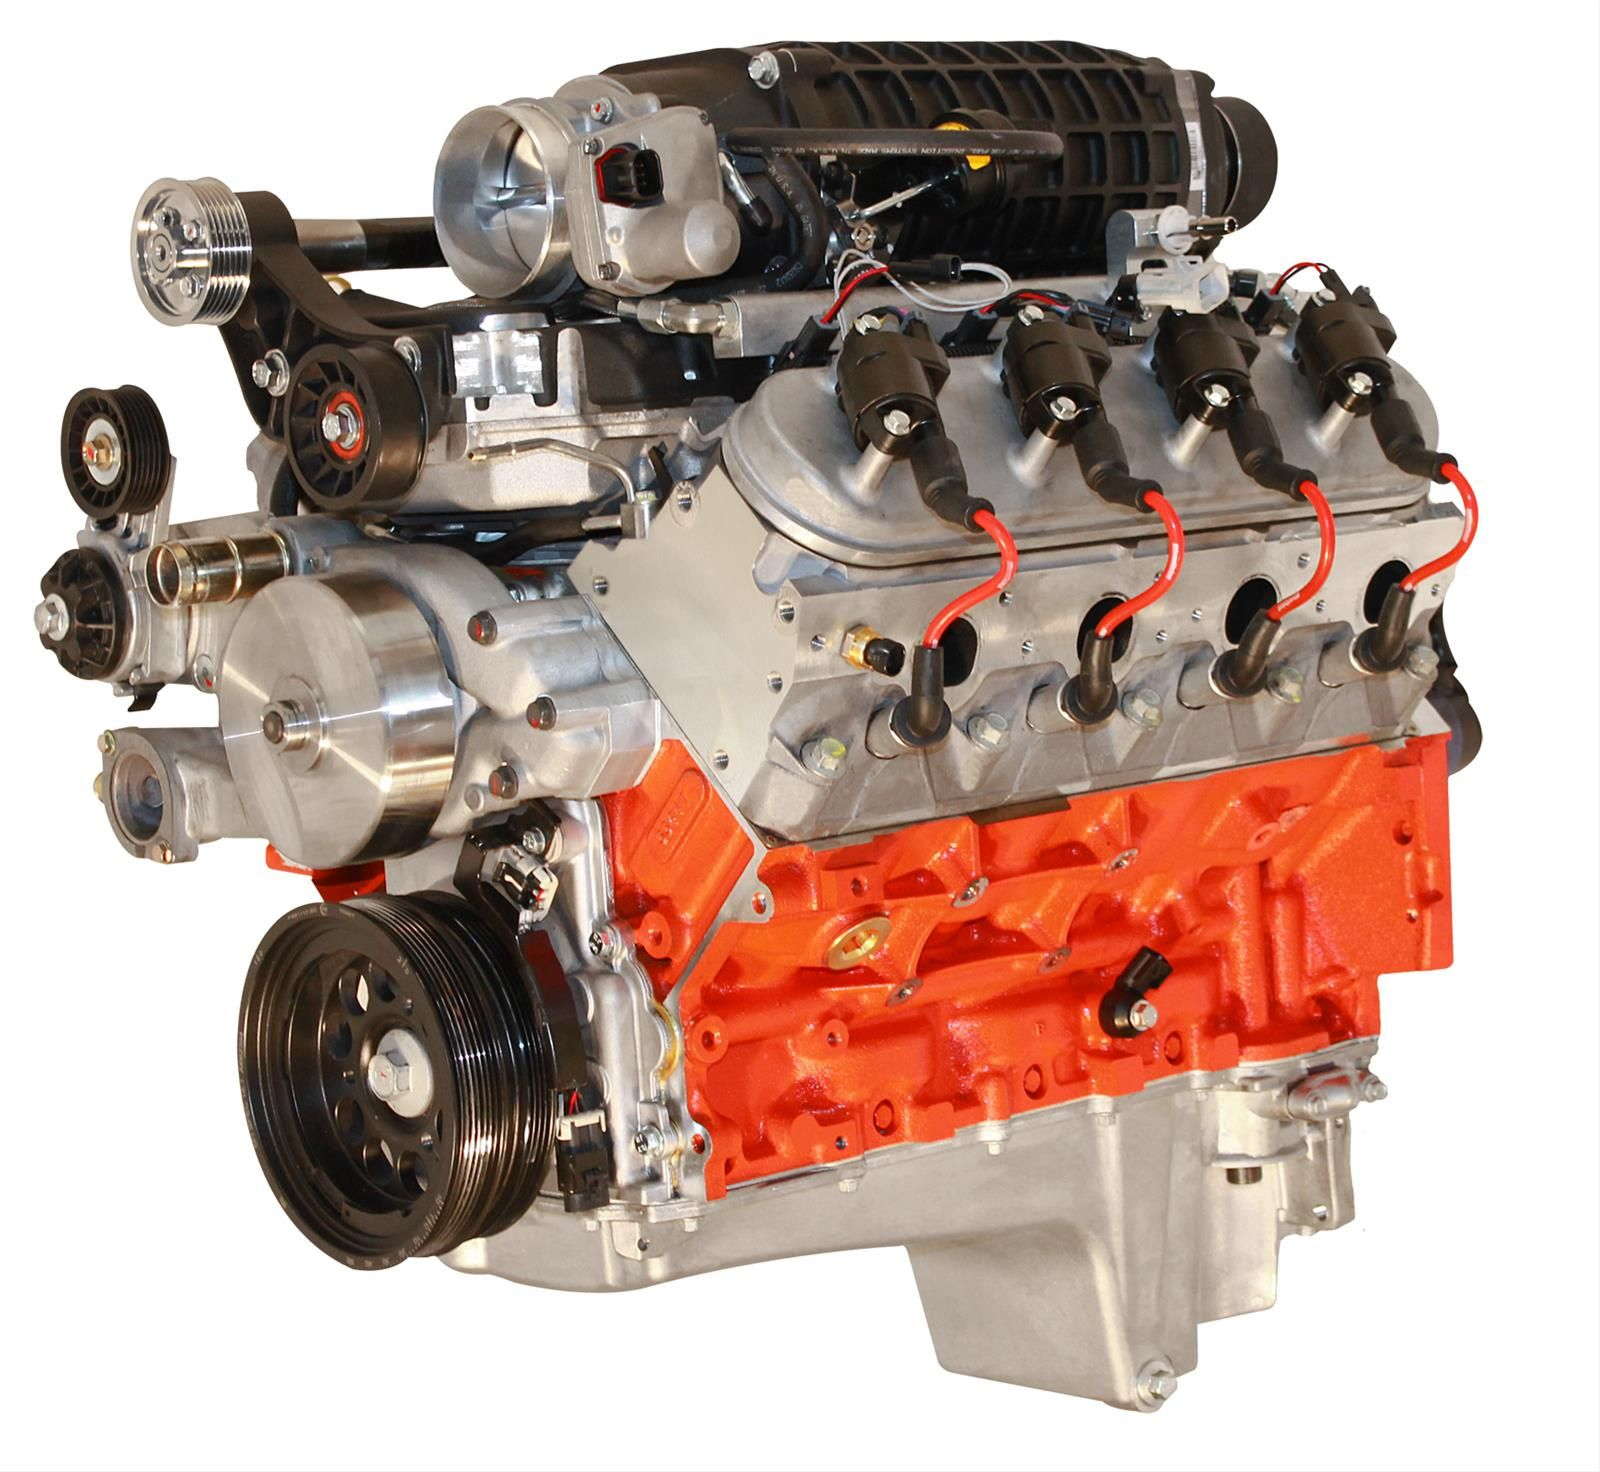 Blueprint engines pro series chevy ls 427 c i d 750 hp supercharged fuel injected crate engines psls4272sct